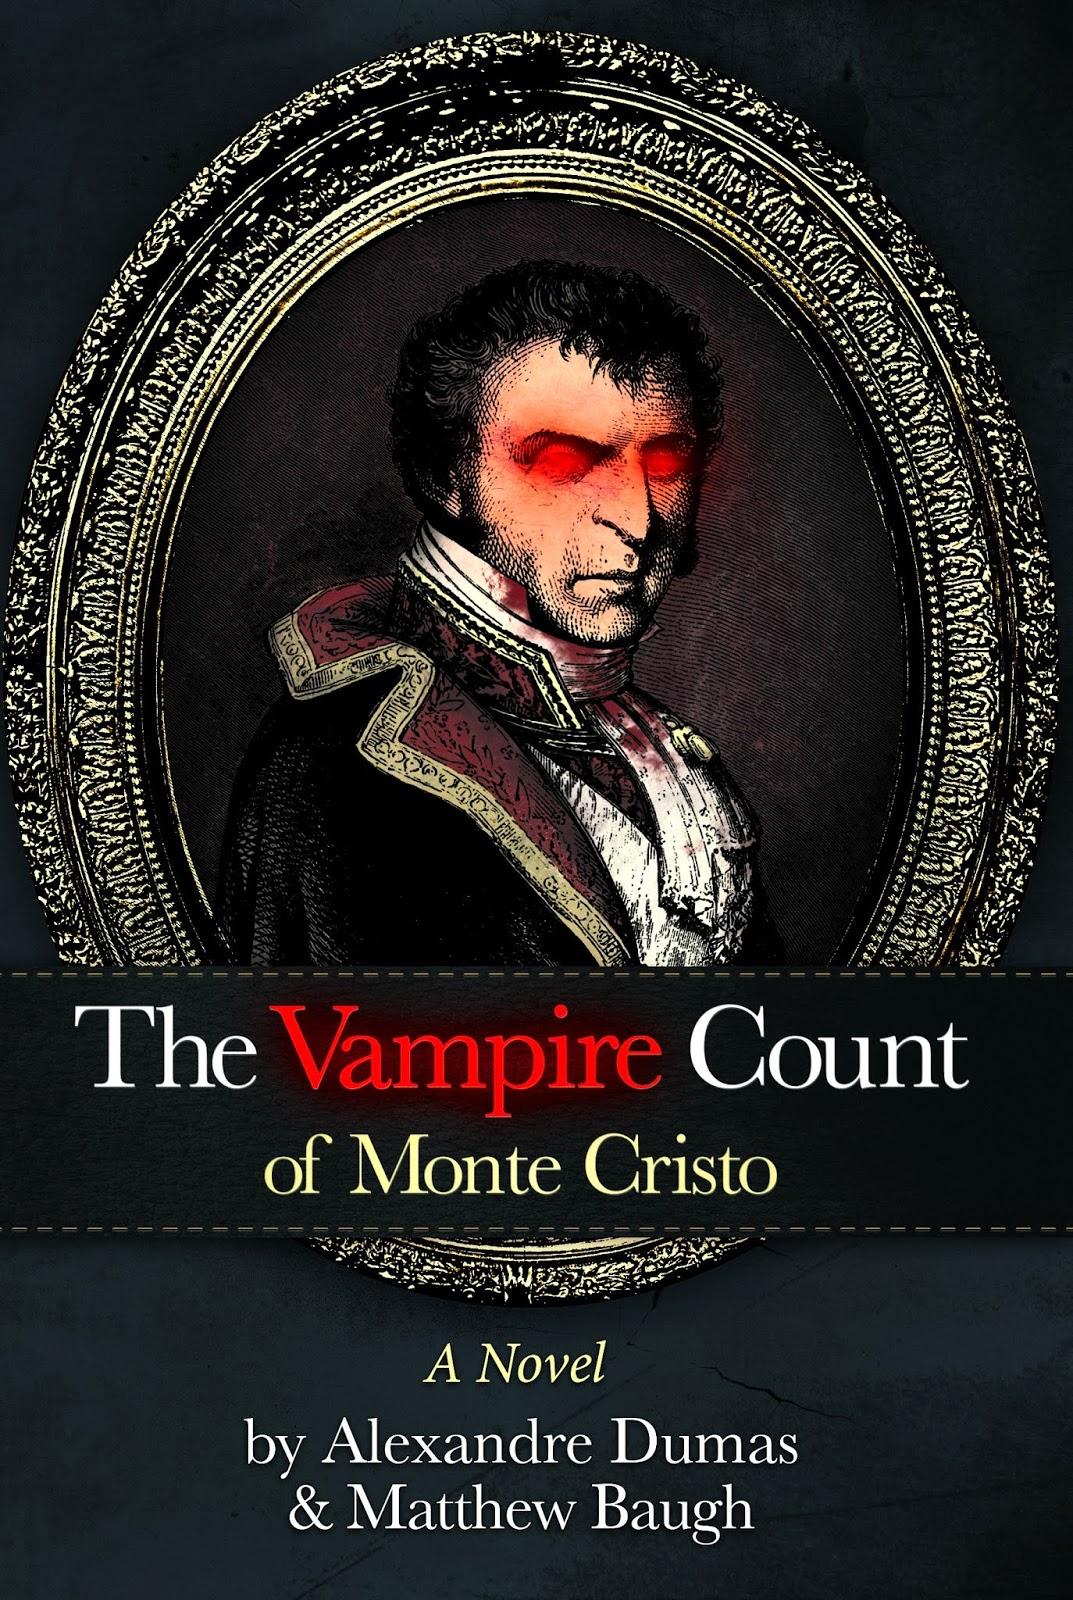 the count of monte cristo retellings gankutsuou etc neogaf the vampire count of monte cristo this one is more for amusement i guess